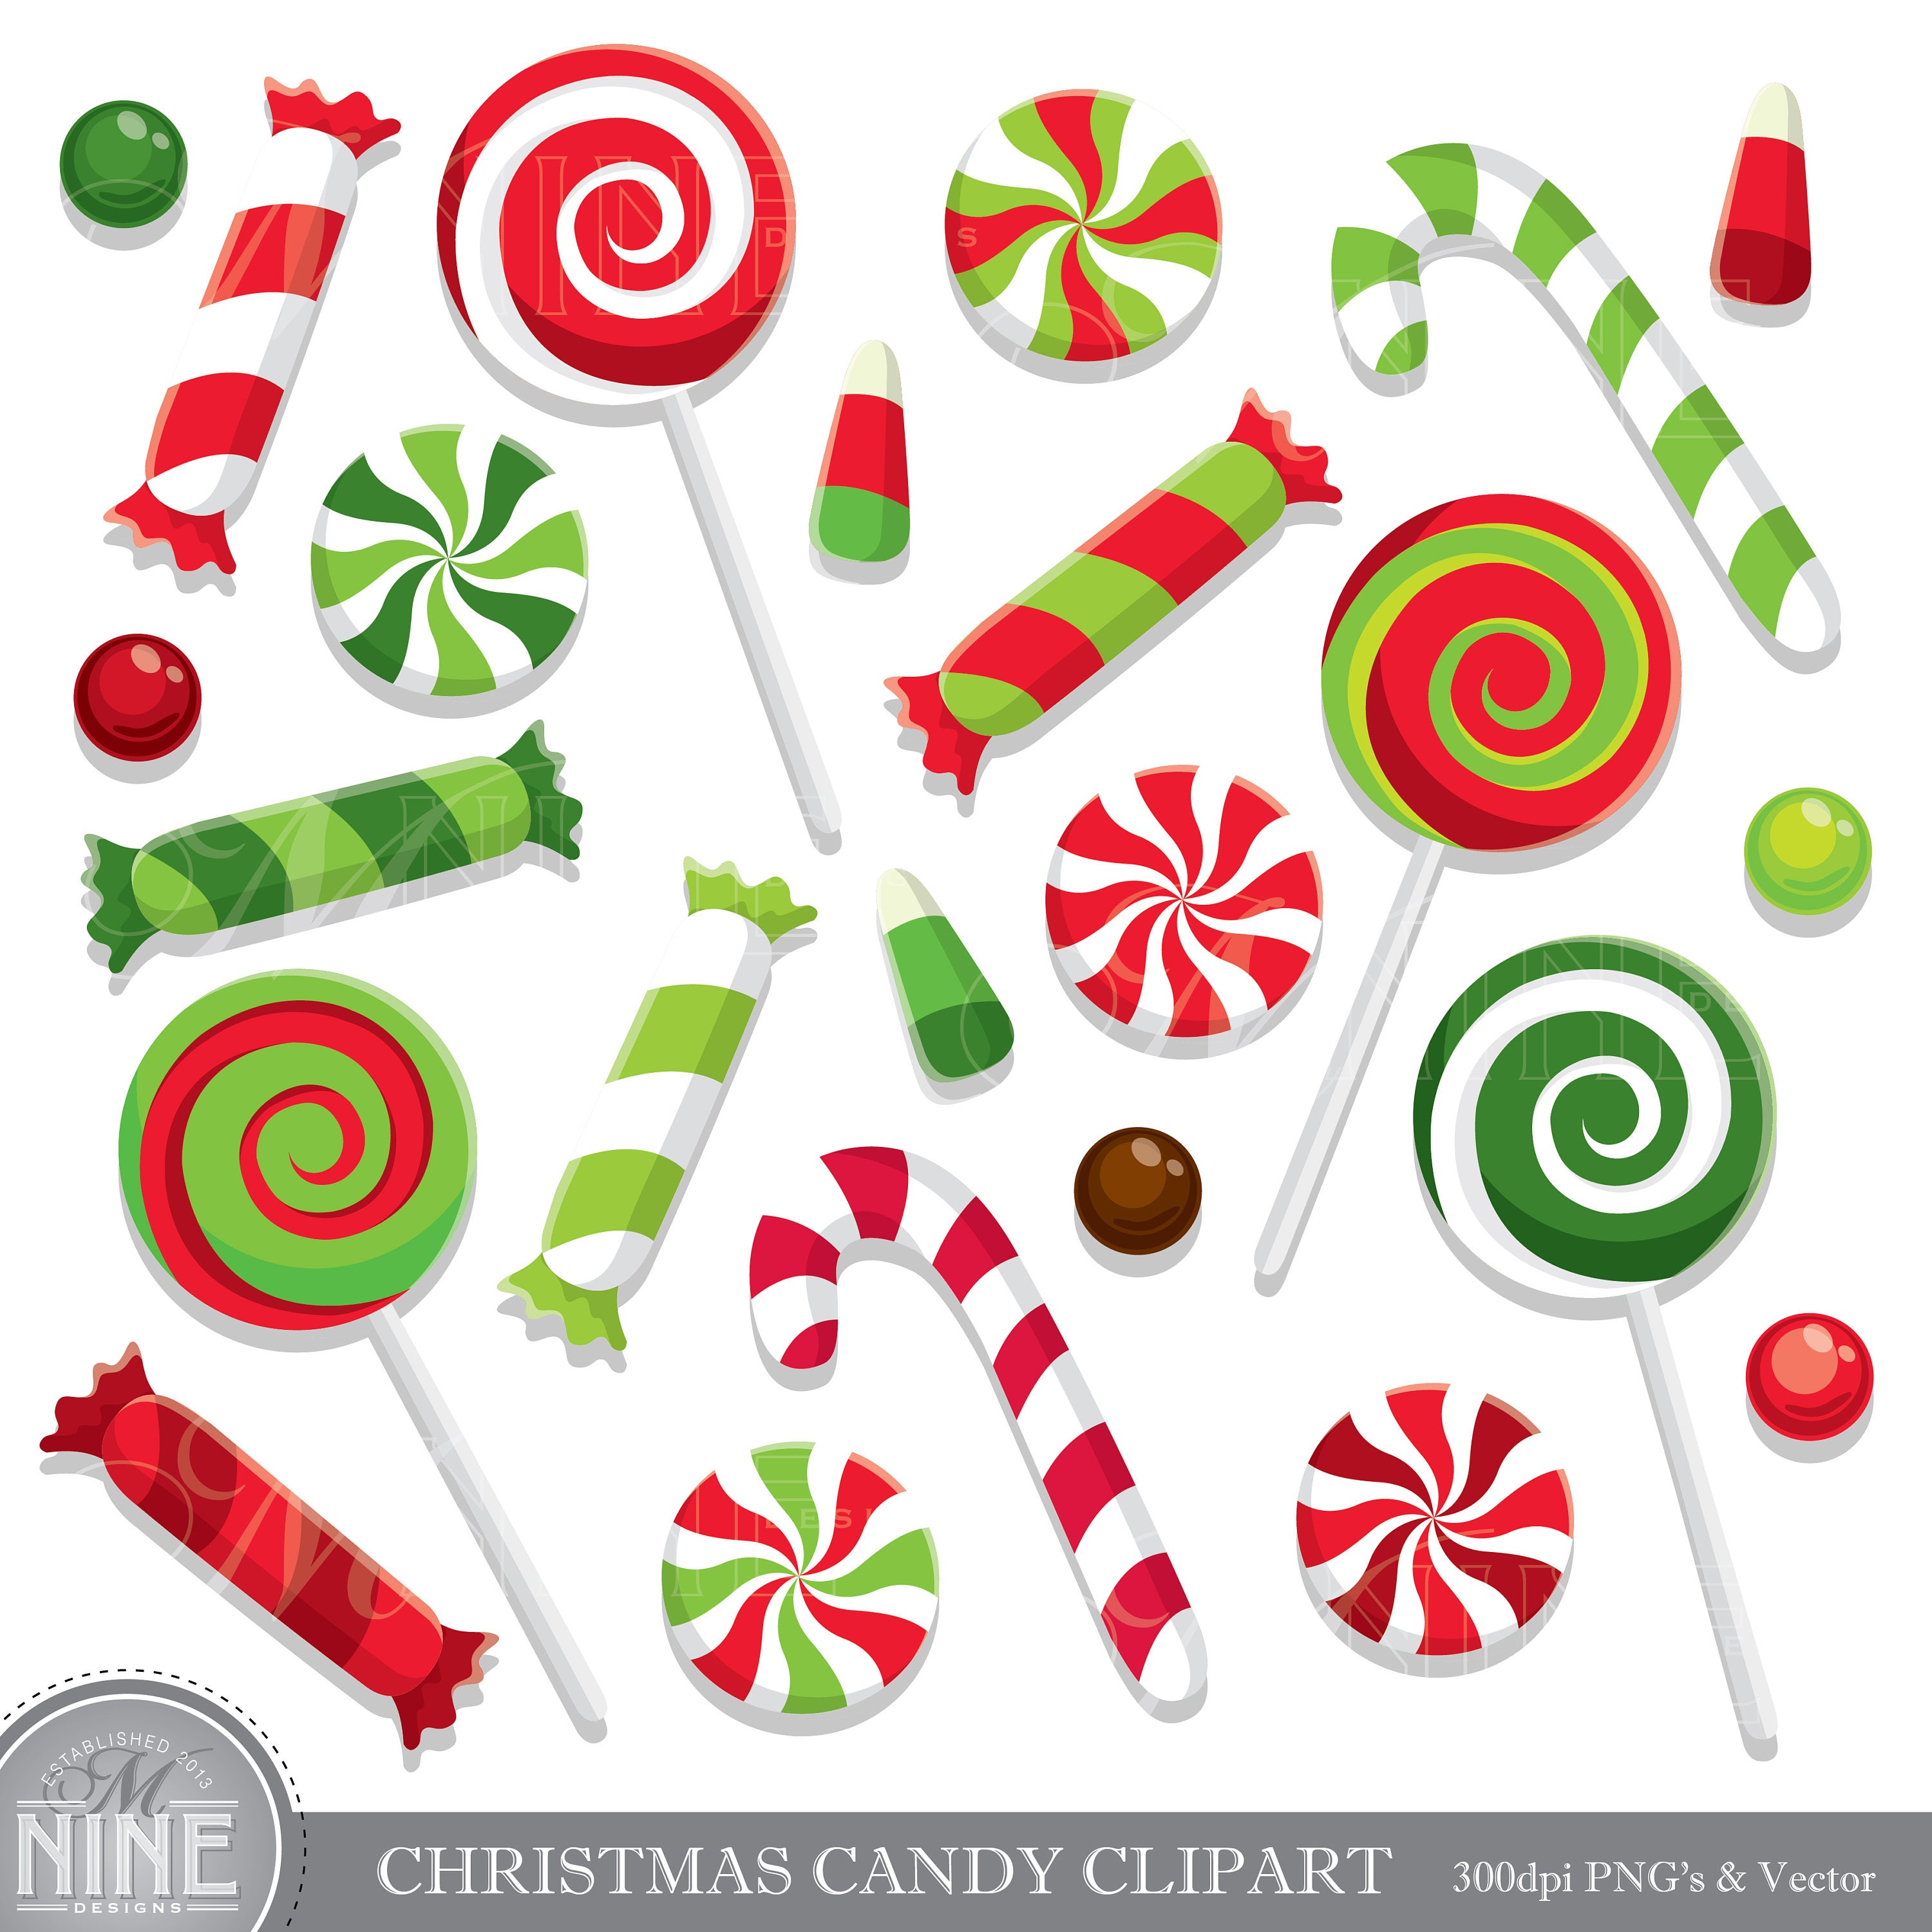 zoom - Christmas Candy